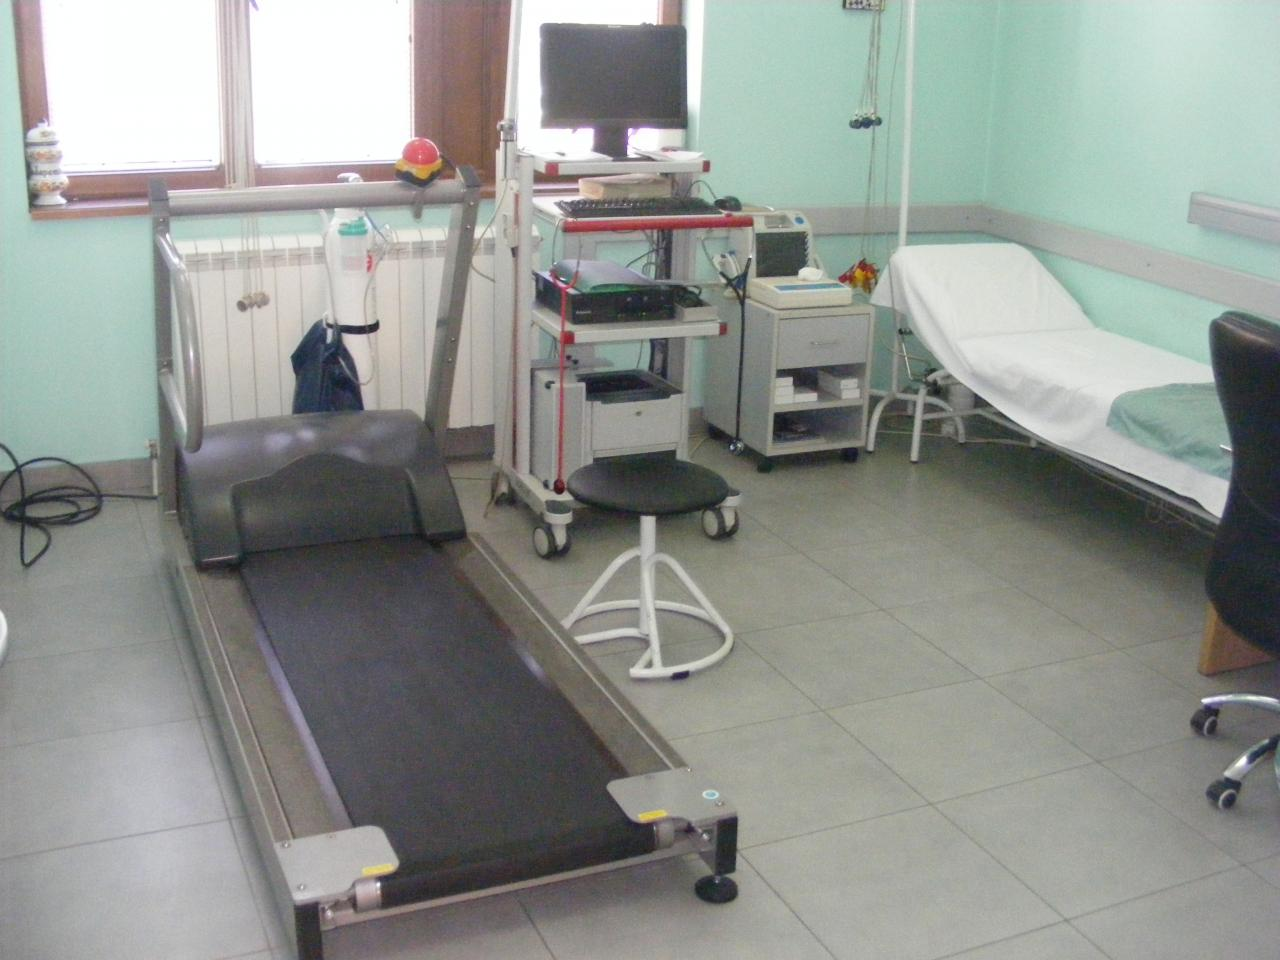 POLIKLINIKA INTERMEDIC Doctors offices Valjevo - Photo 4